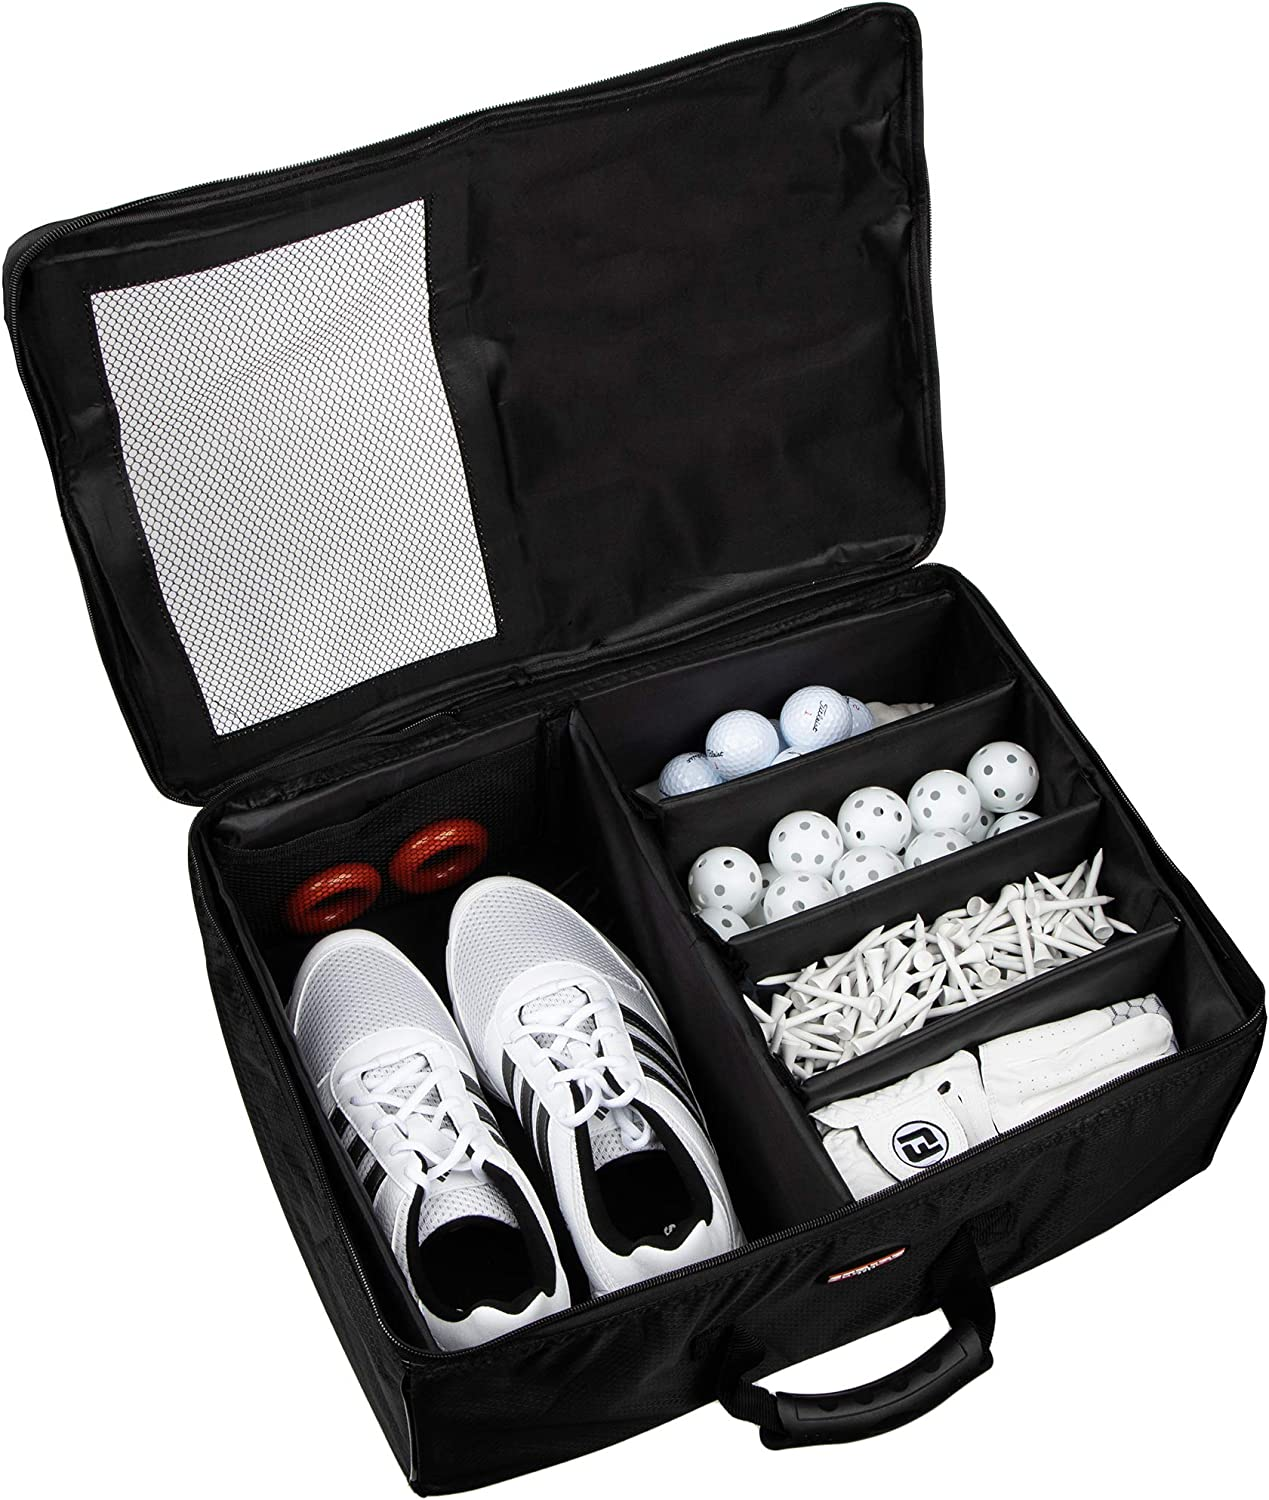 Stripe Golf Trunk Organizer and Travel Storage Locker